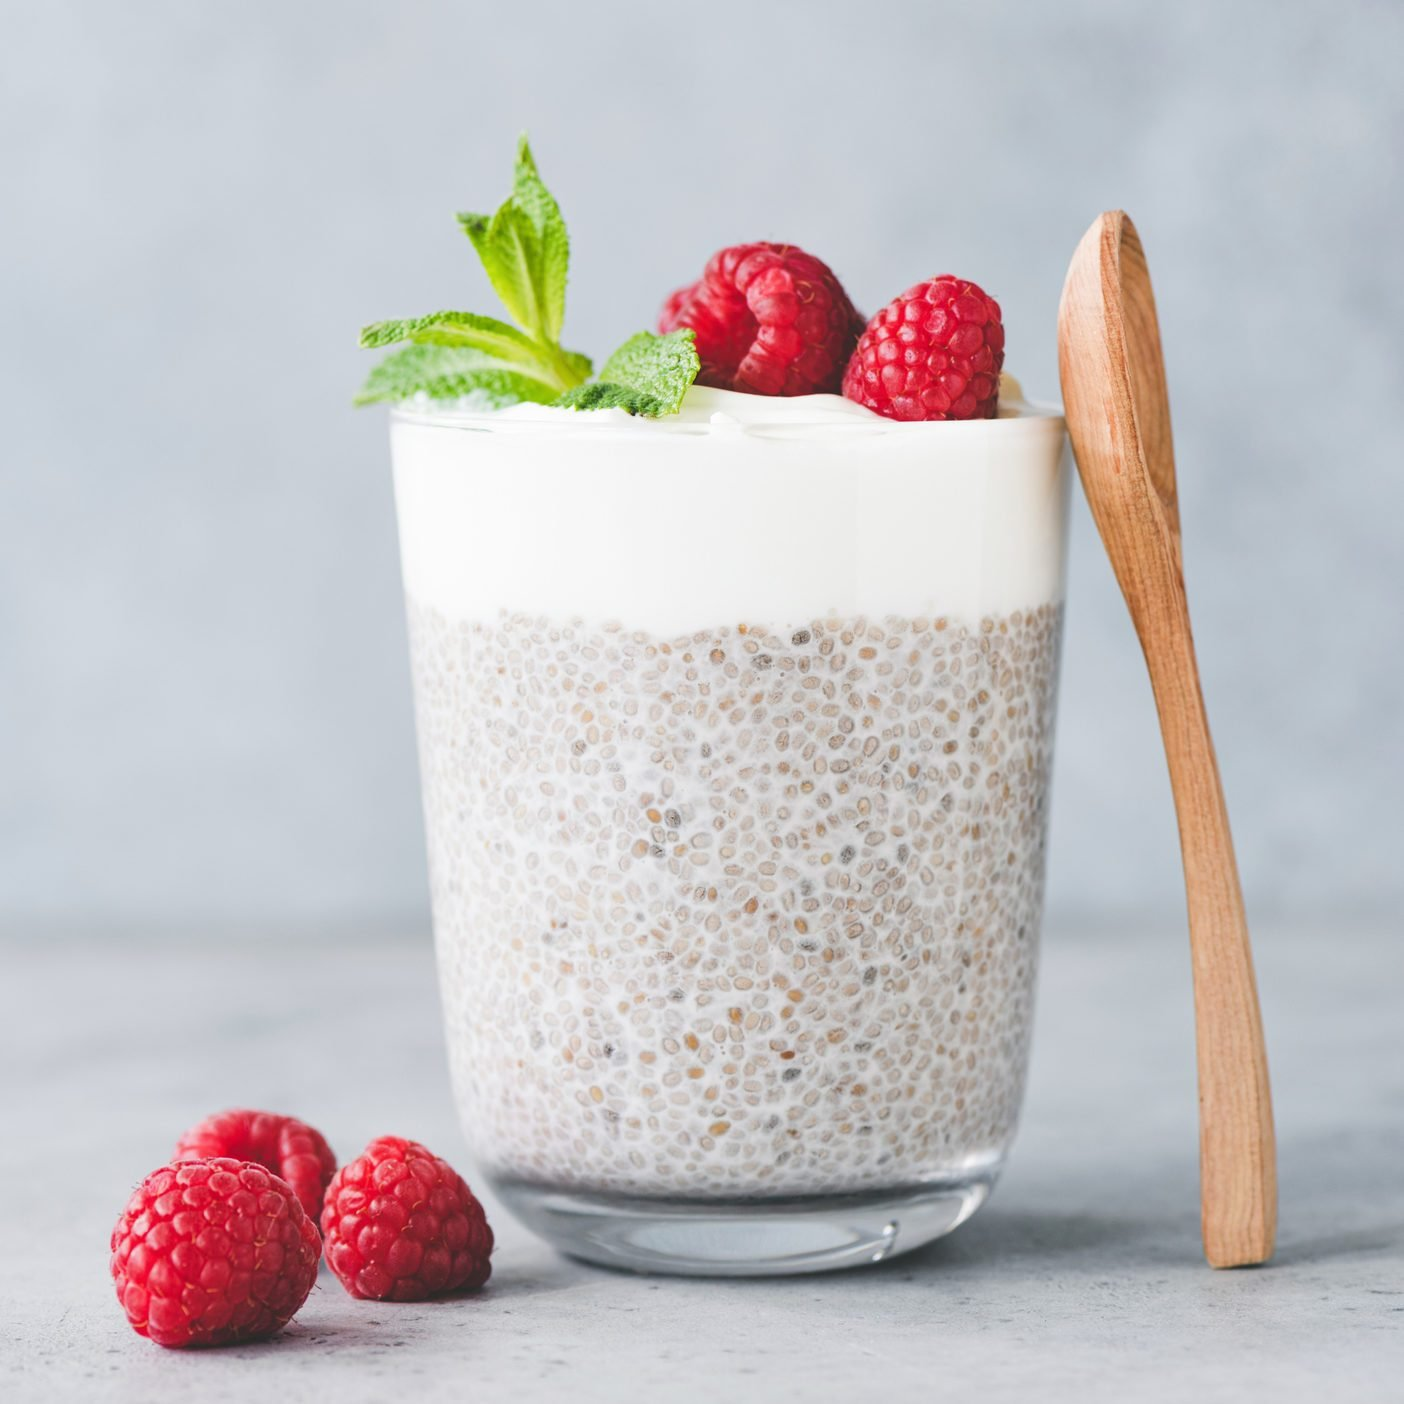 Chia Pudding Parfait With Yogurt And Raspberries